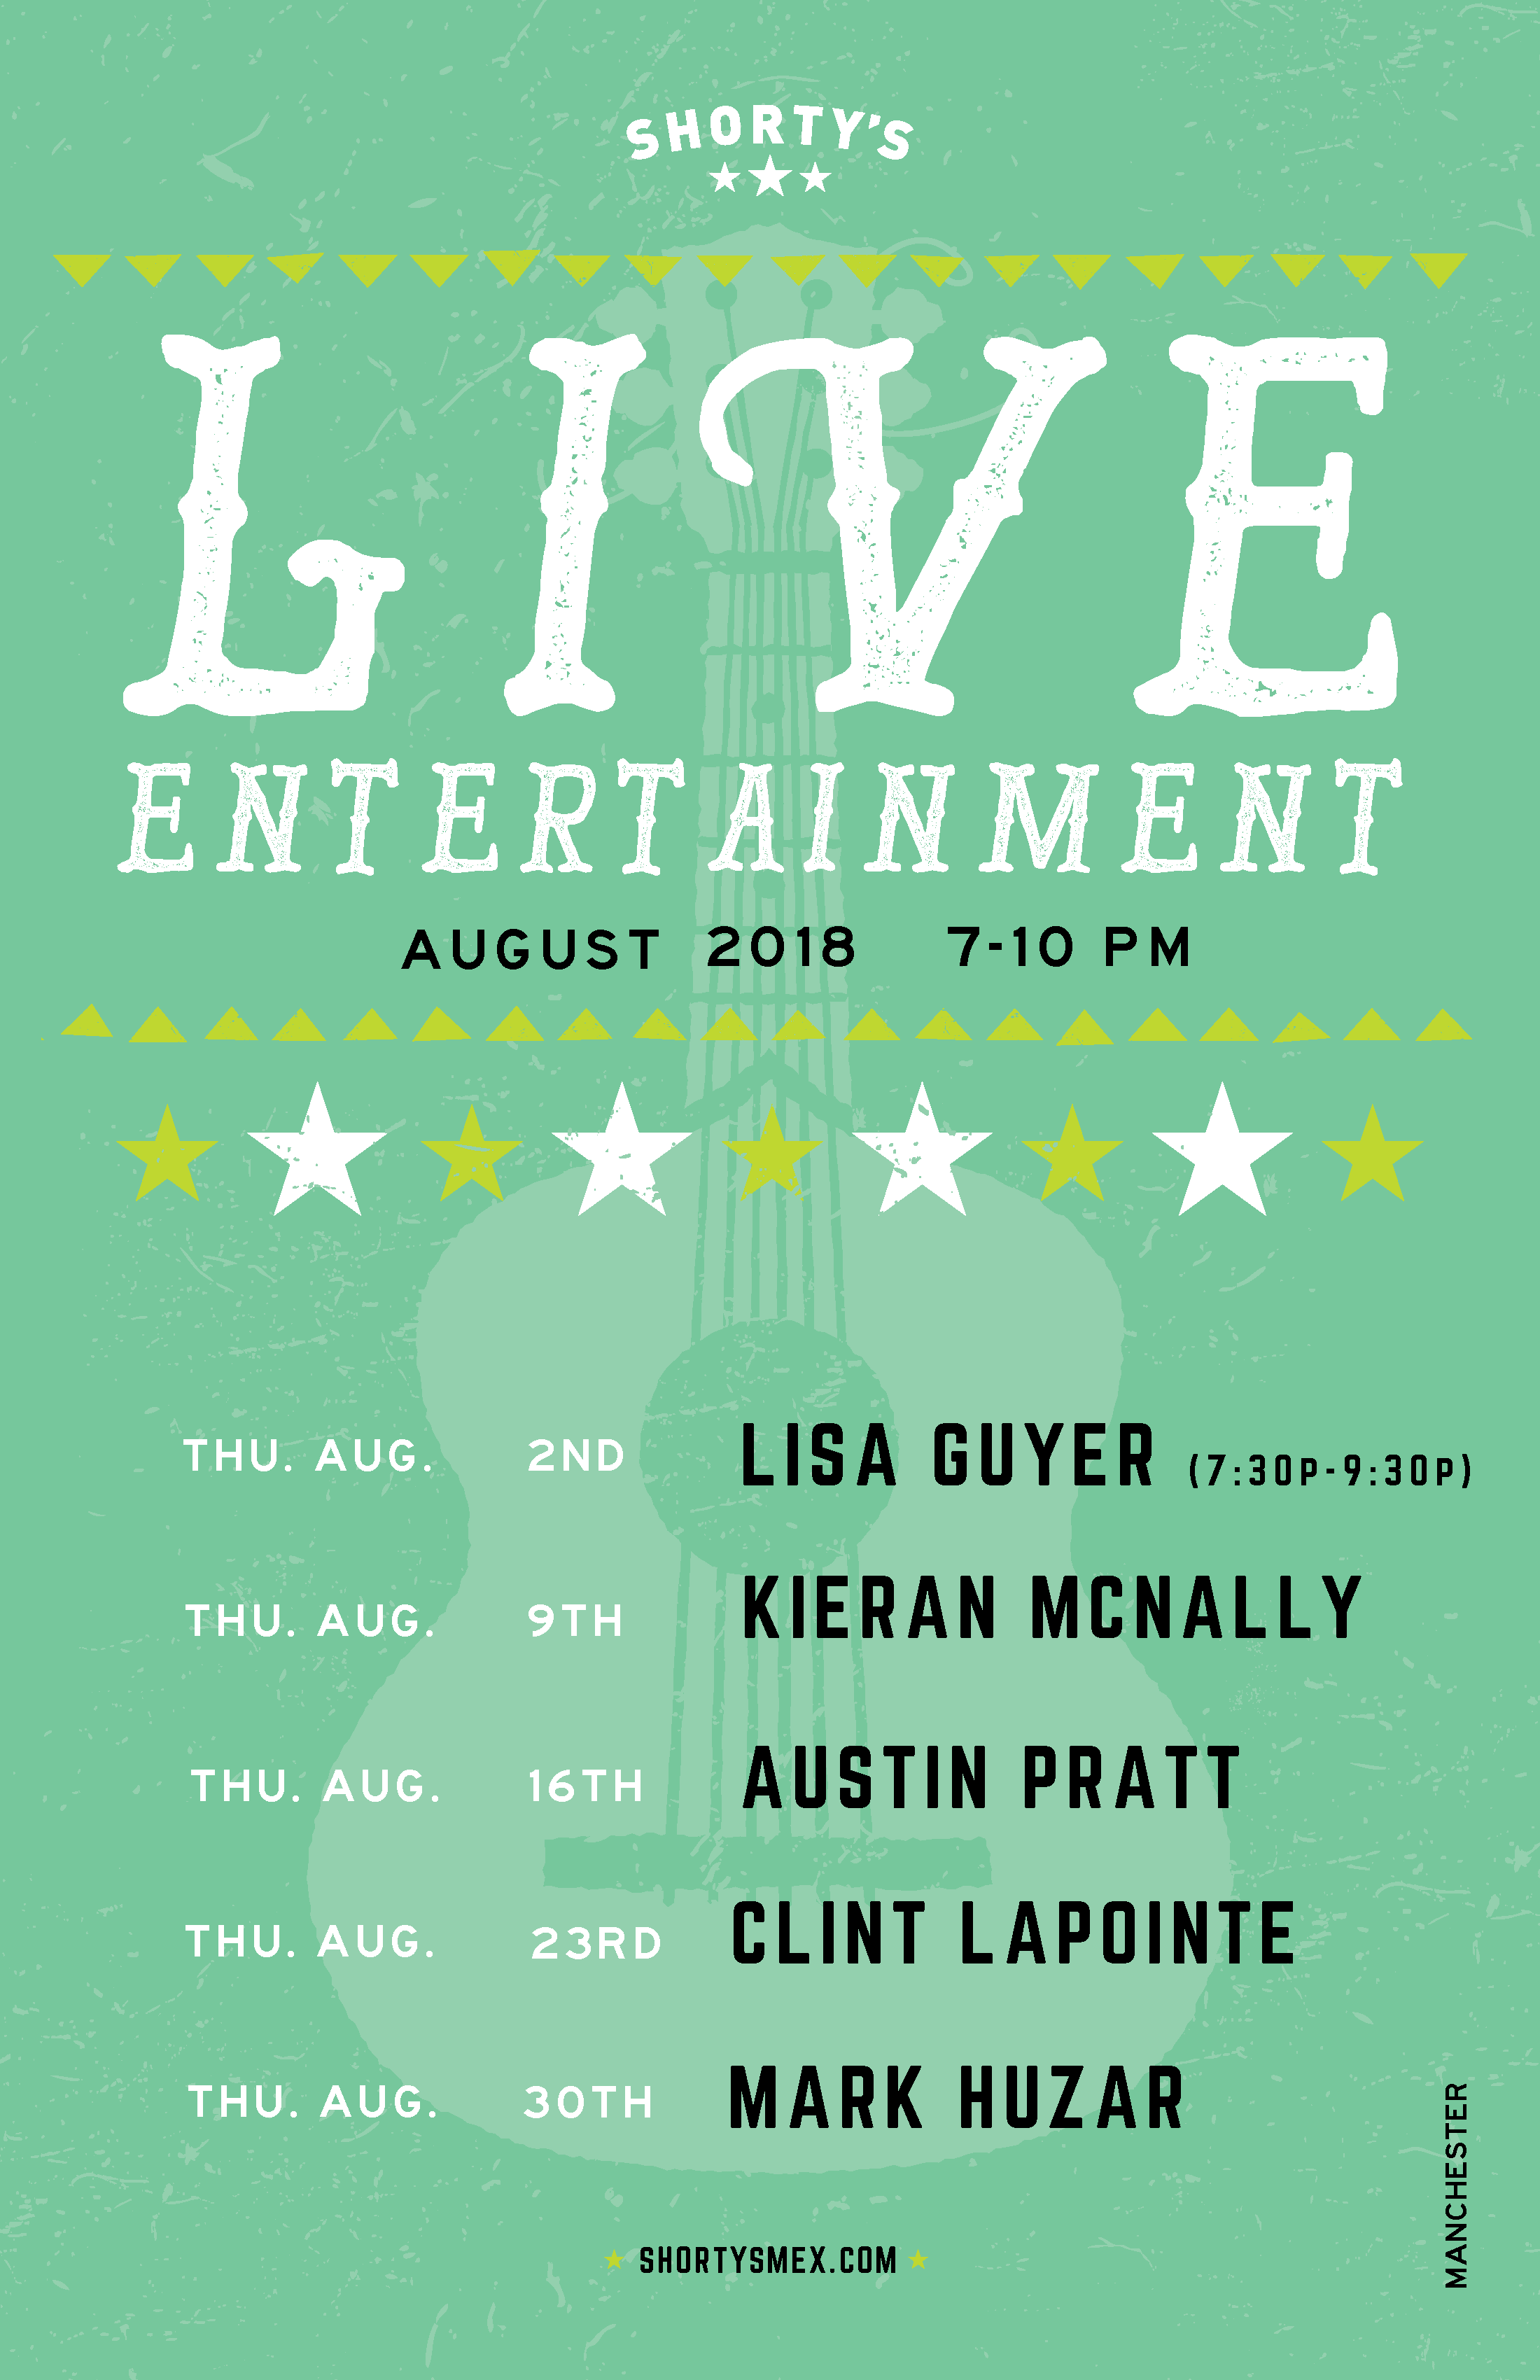 August Live Entertainment Schedule for Shorty's Manchester